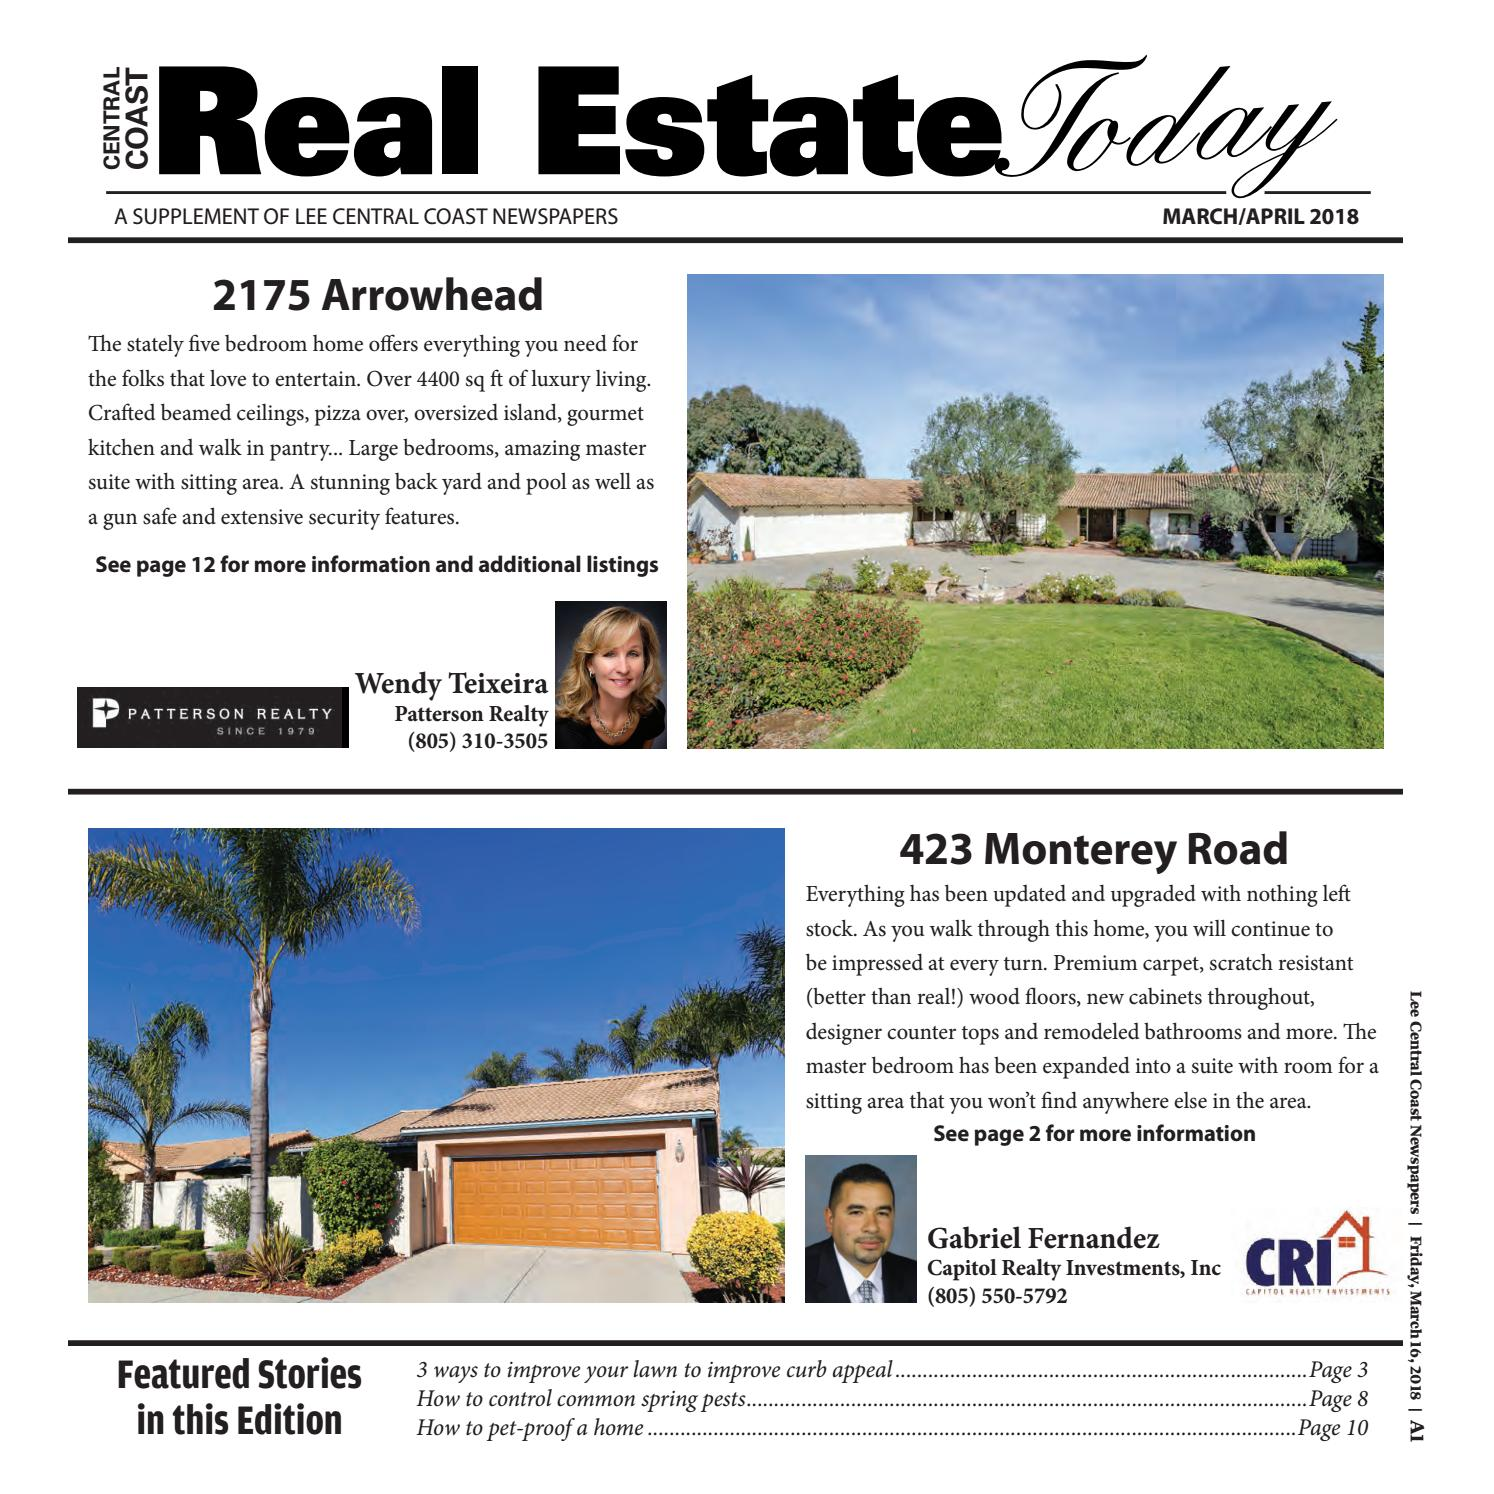 Real Estate Today by Lee Central Coast Newspapers - issuu